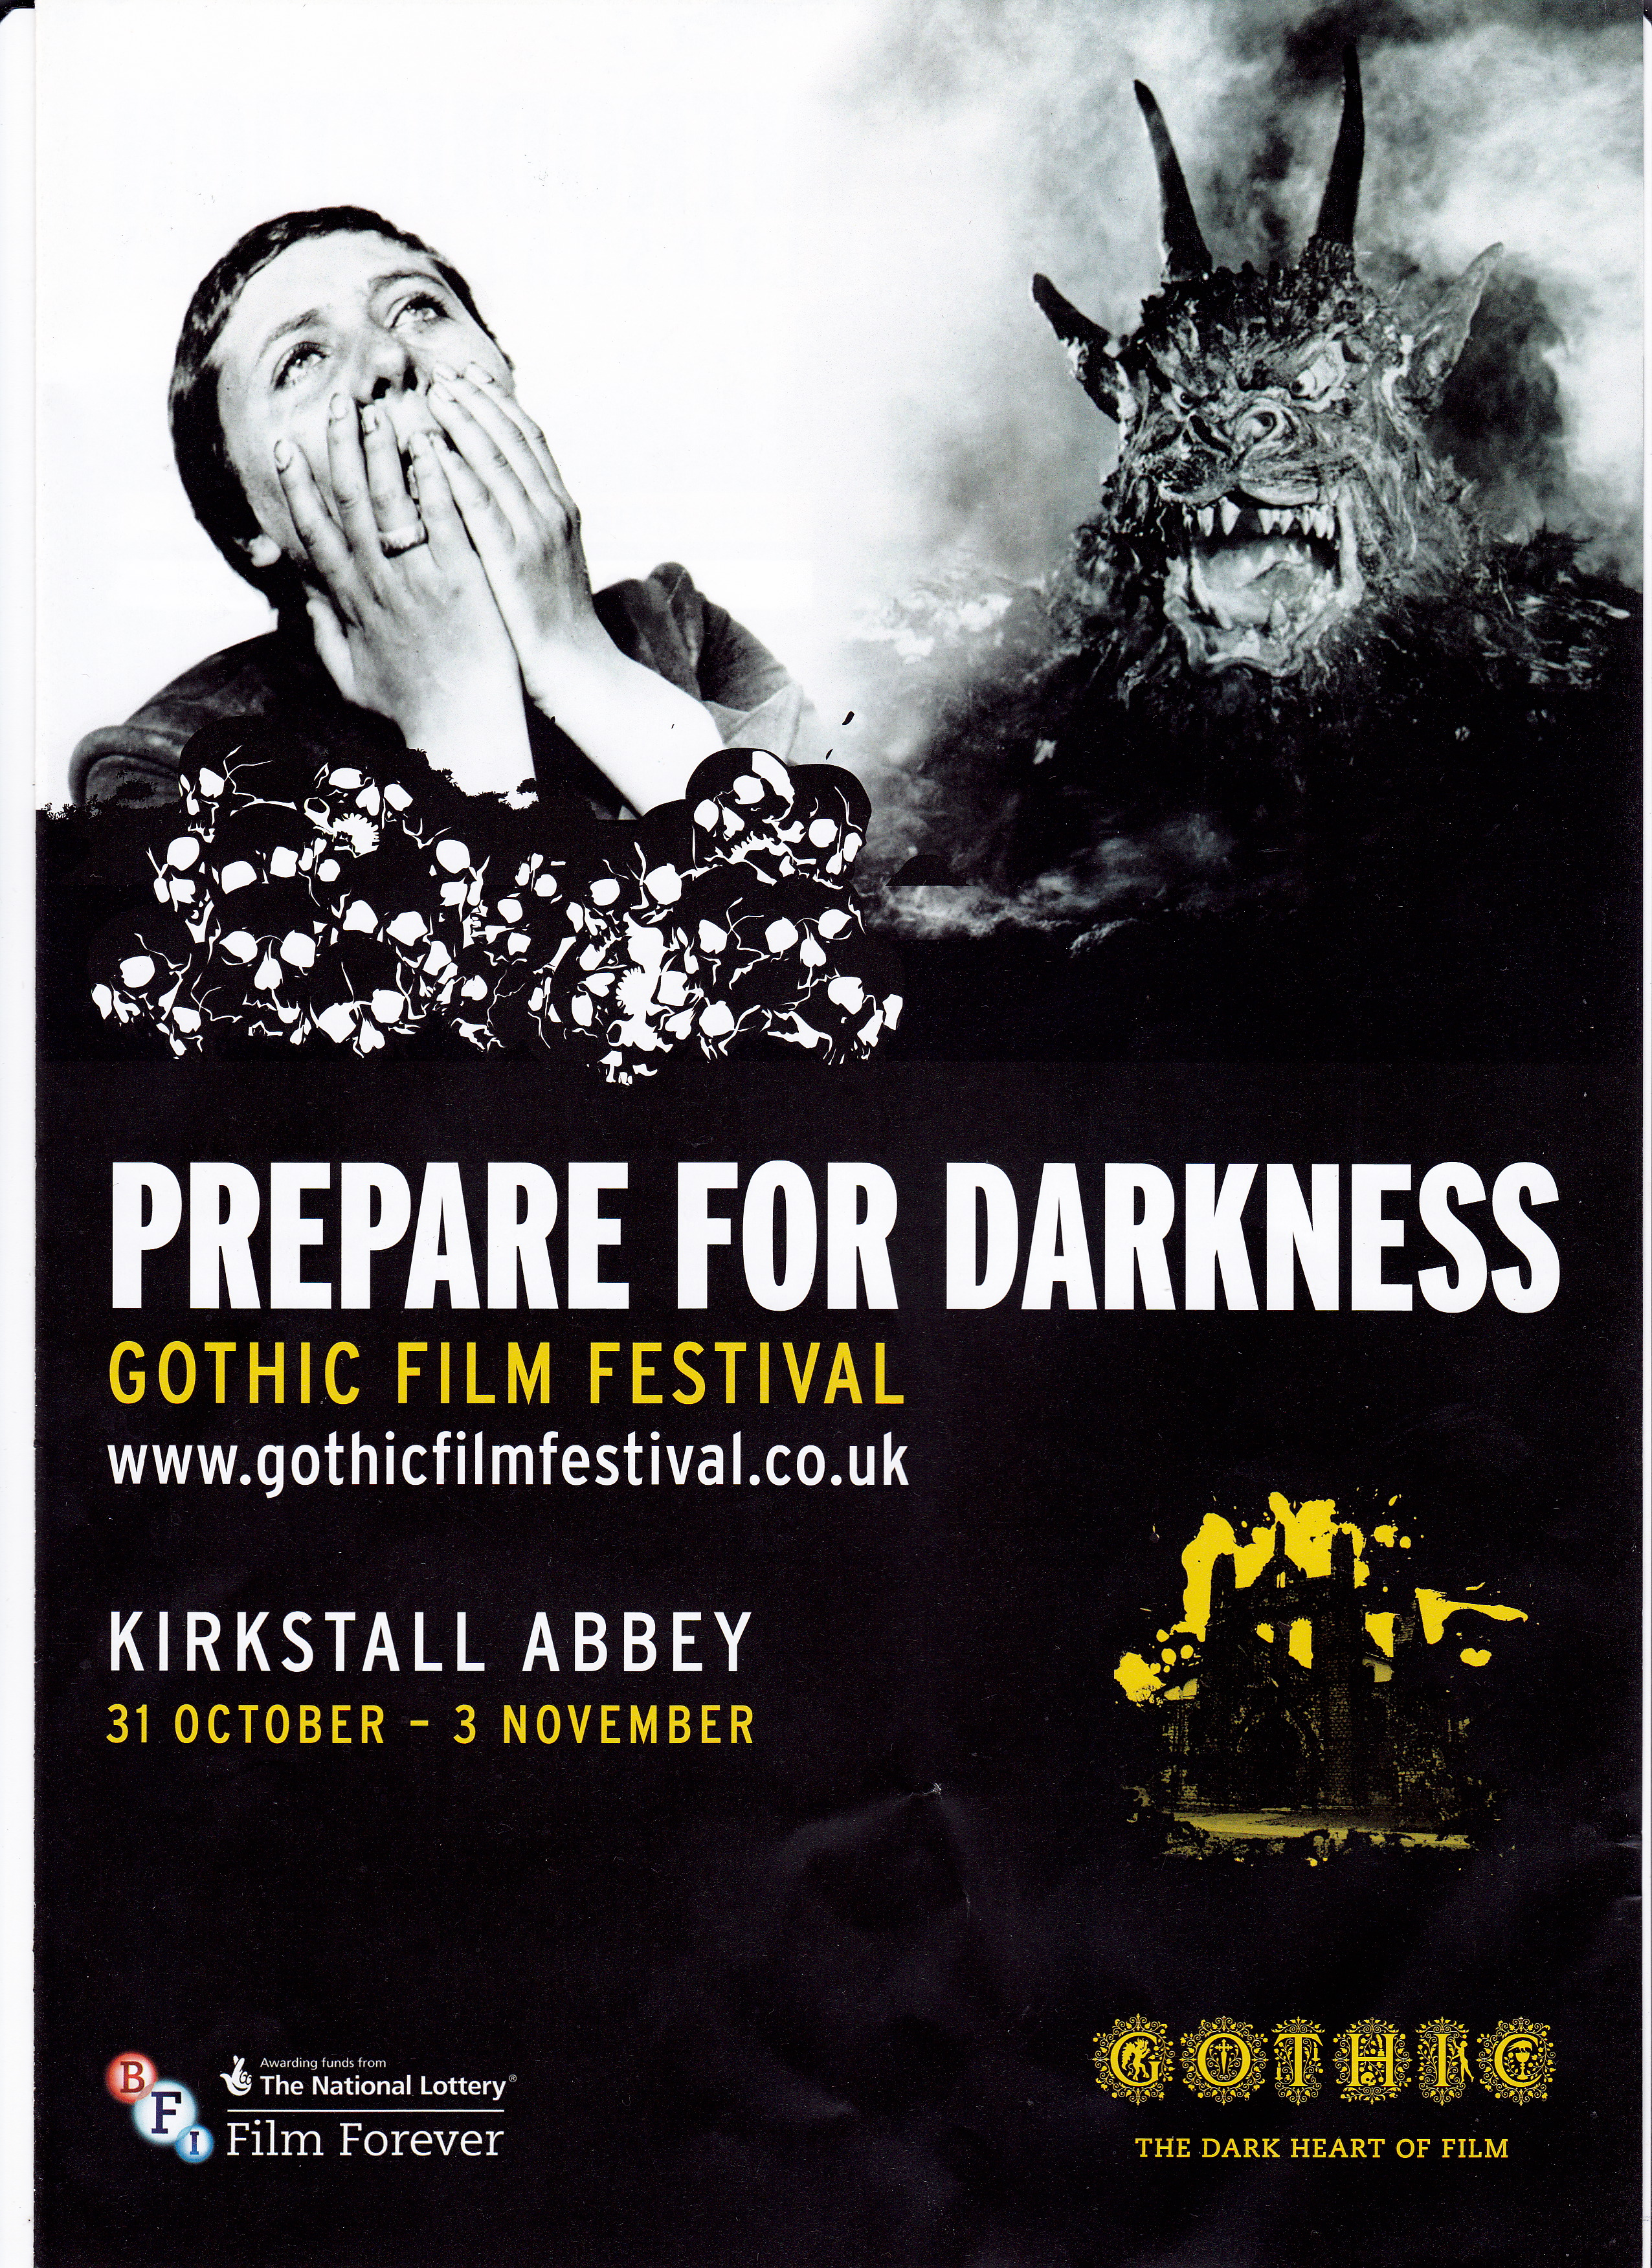 This was the Gothic Film Festival organised by the Cambridge Film Trust at  the Kirkstall Abbey ruins in Leeds  close by the River Aire. The Gothic   The Case for Global Film